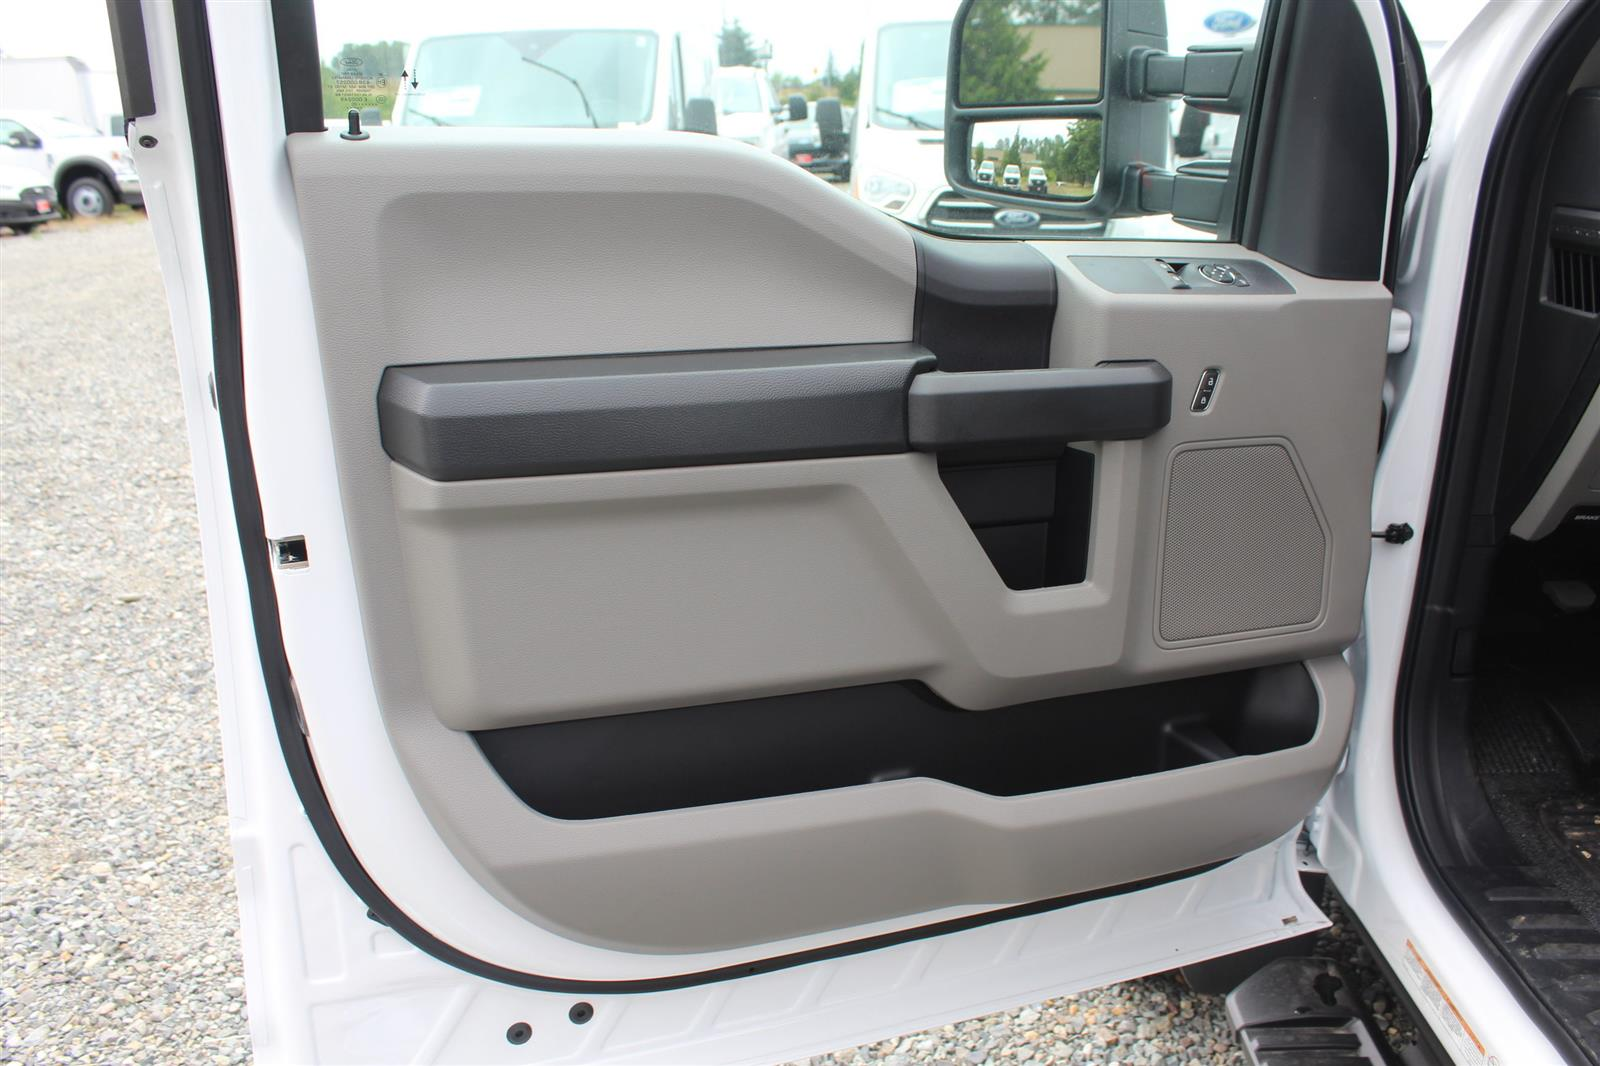 2020 Ford F-450 Regular Cab DRW 4x2, Cab Chassis #E9292 - photo 12